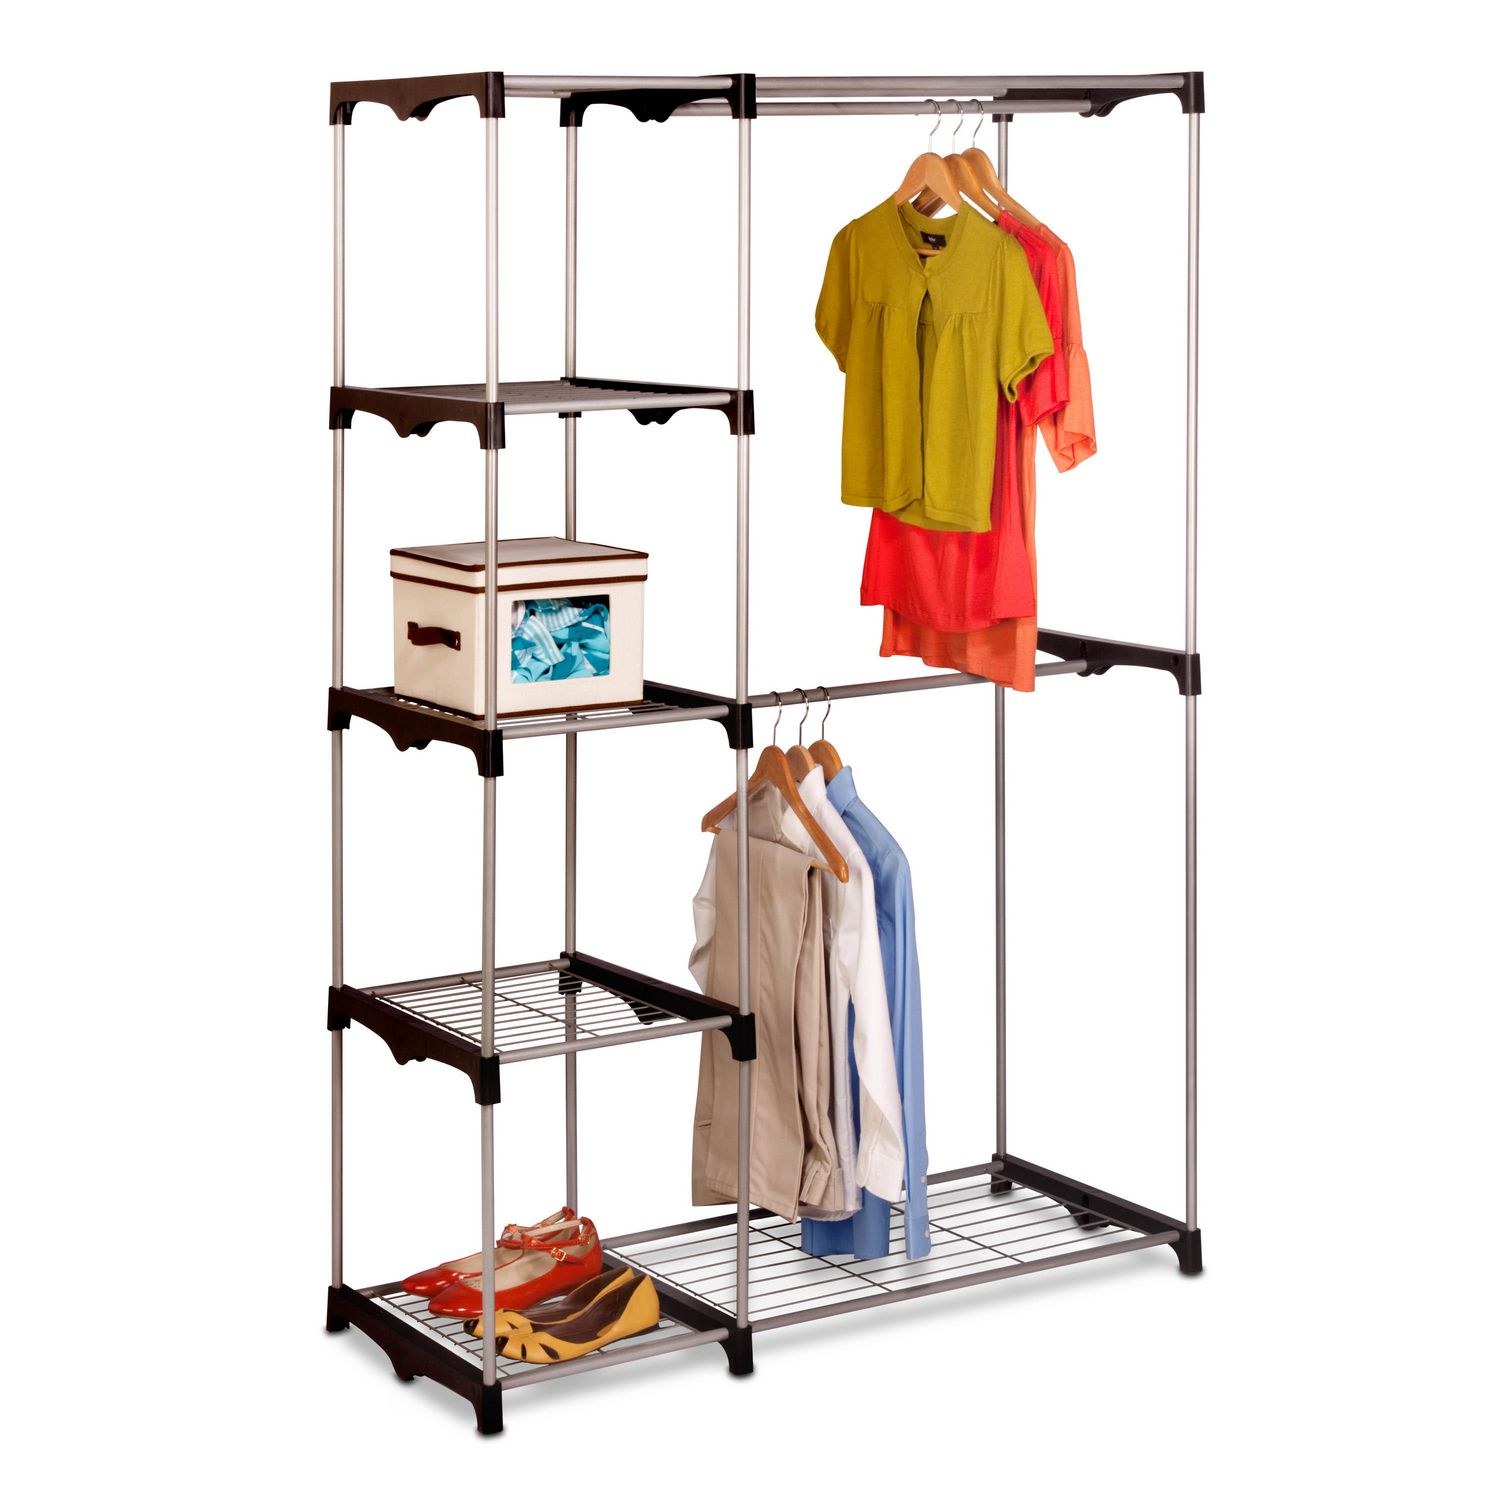 pax wardrobe storage and decoration ikea design unbelievable with beautiful portable interior closet organizers